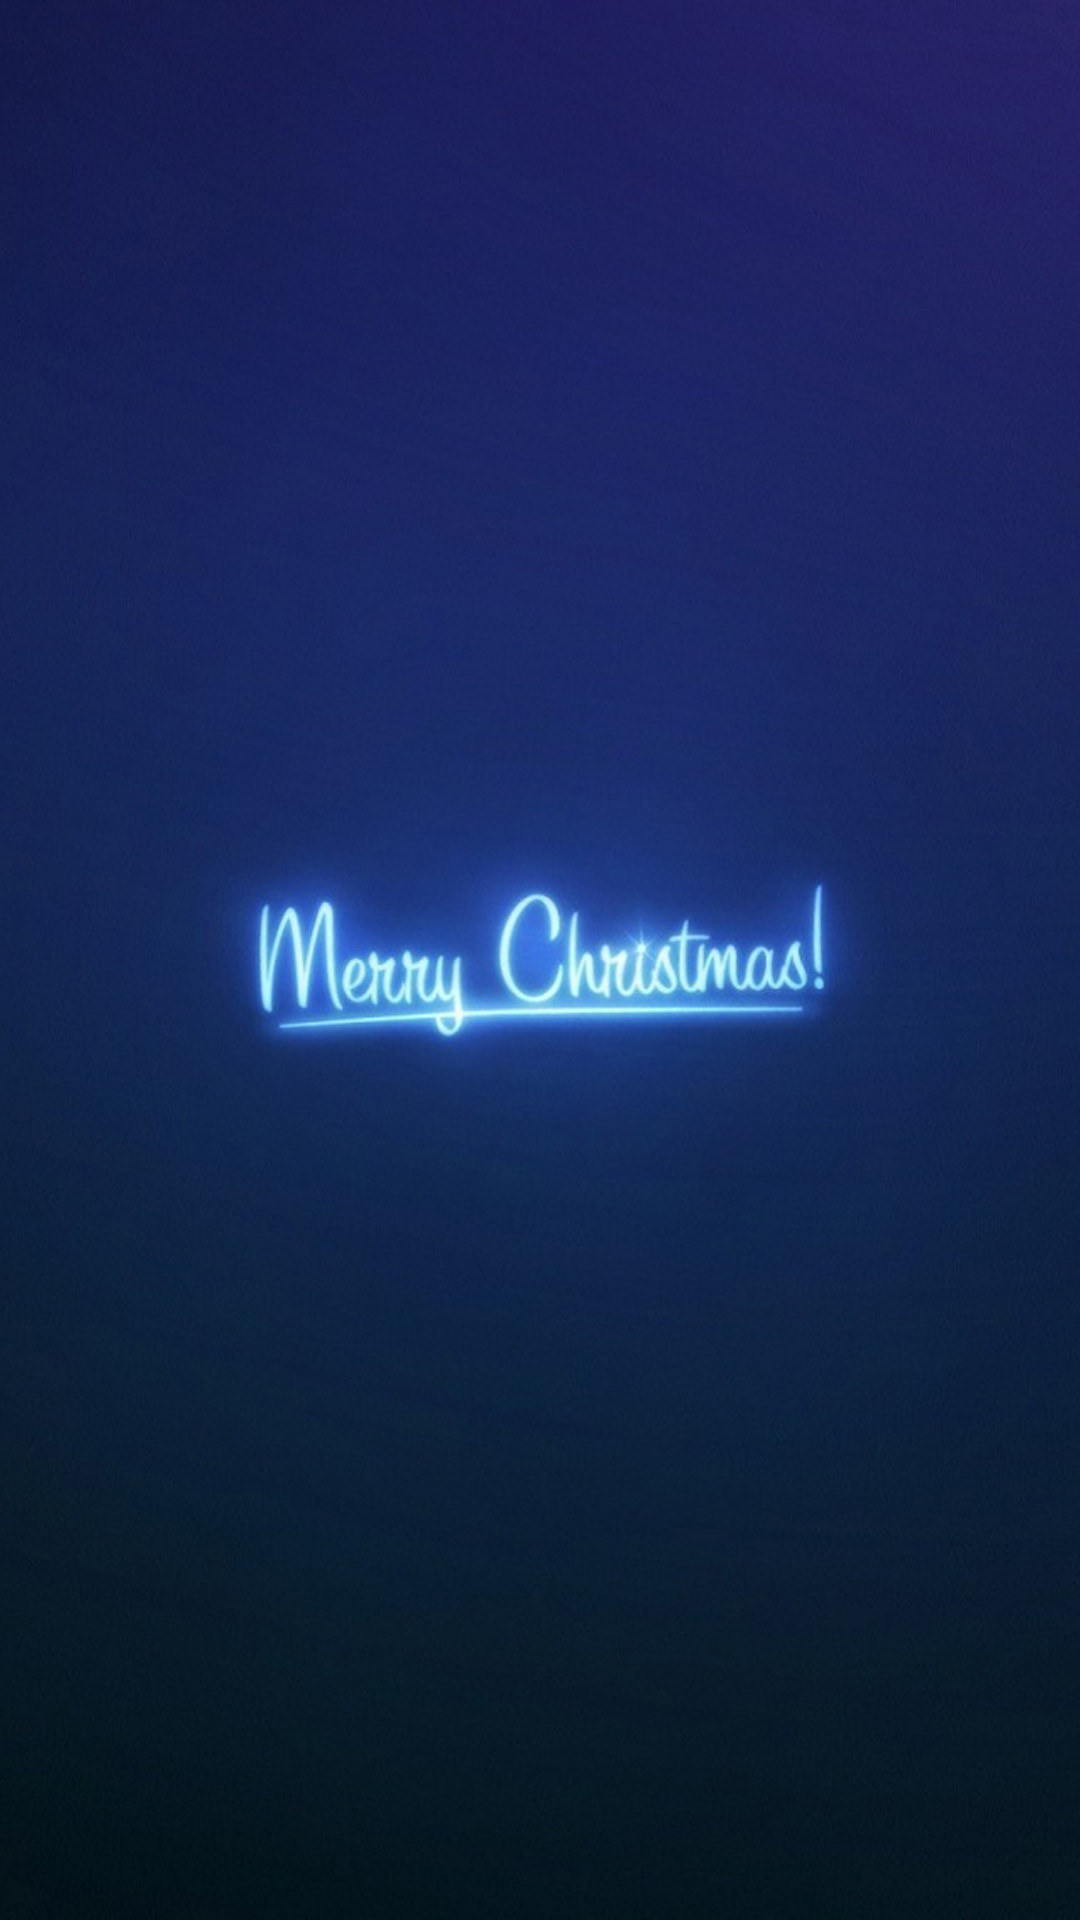 1080x1920 Merry Christmas Neon Blue Light Android Wallpaper ...